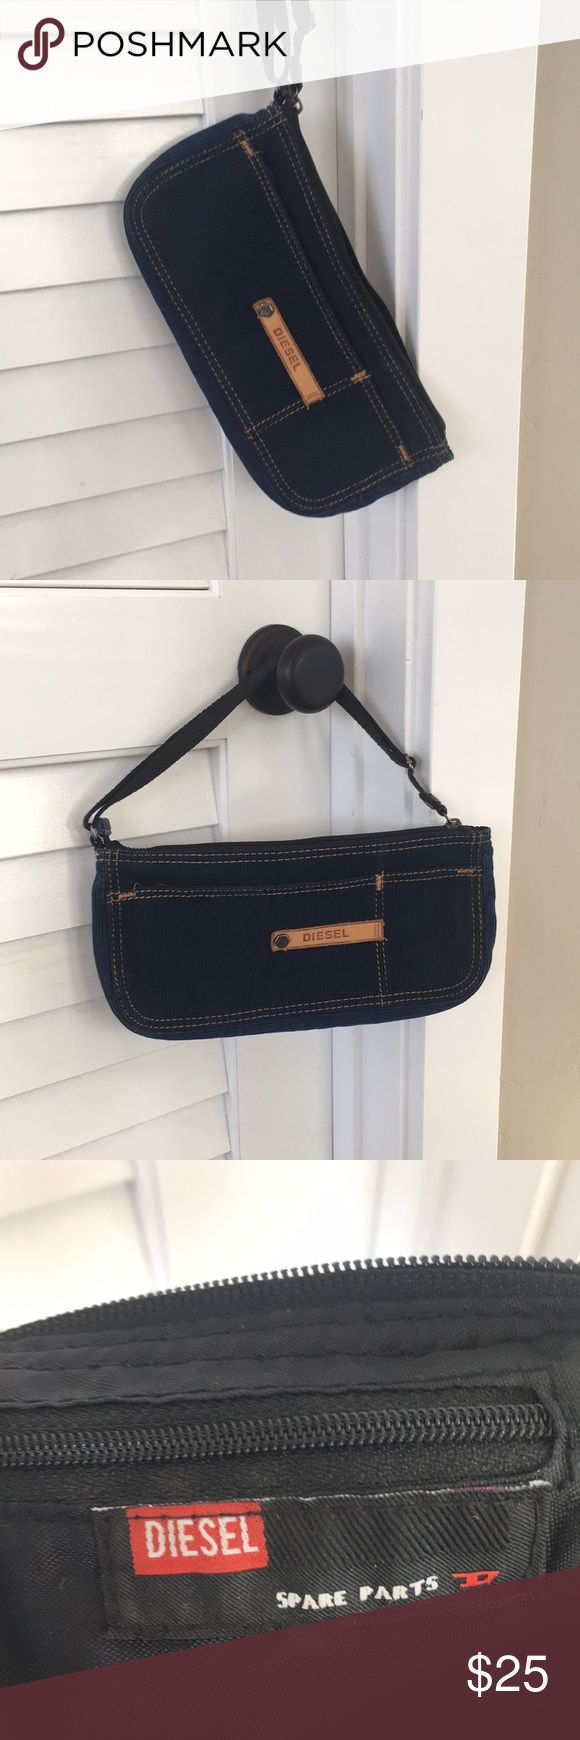 Diesel Clutch in Navy Blue Corduroy Diesel clutch in navy blue. Gold stitching black strap. Used once or twice. No visible wear or defects. Comes from a pet-free, smoke-free home. Diesel Bags Clutches & Wristlets